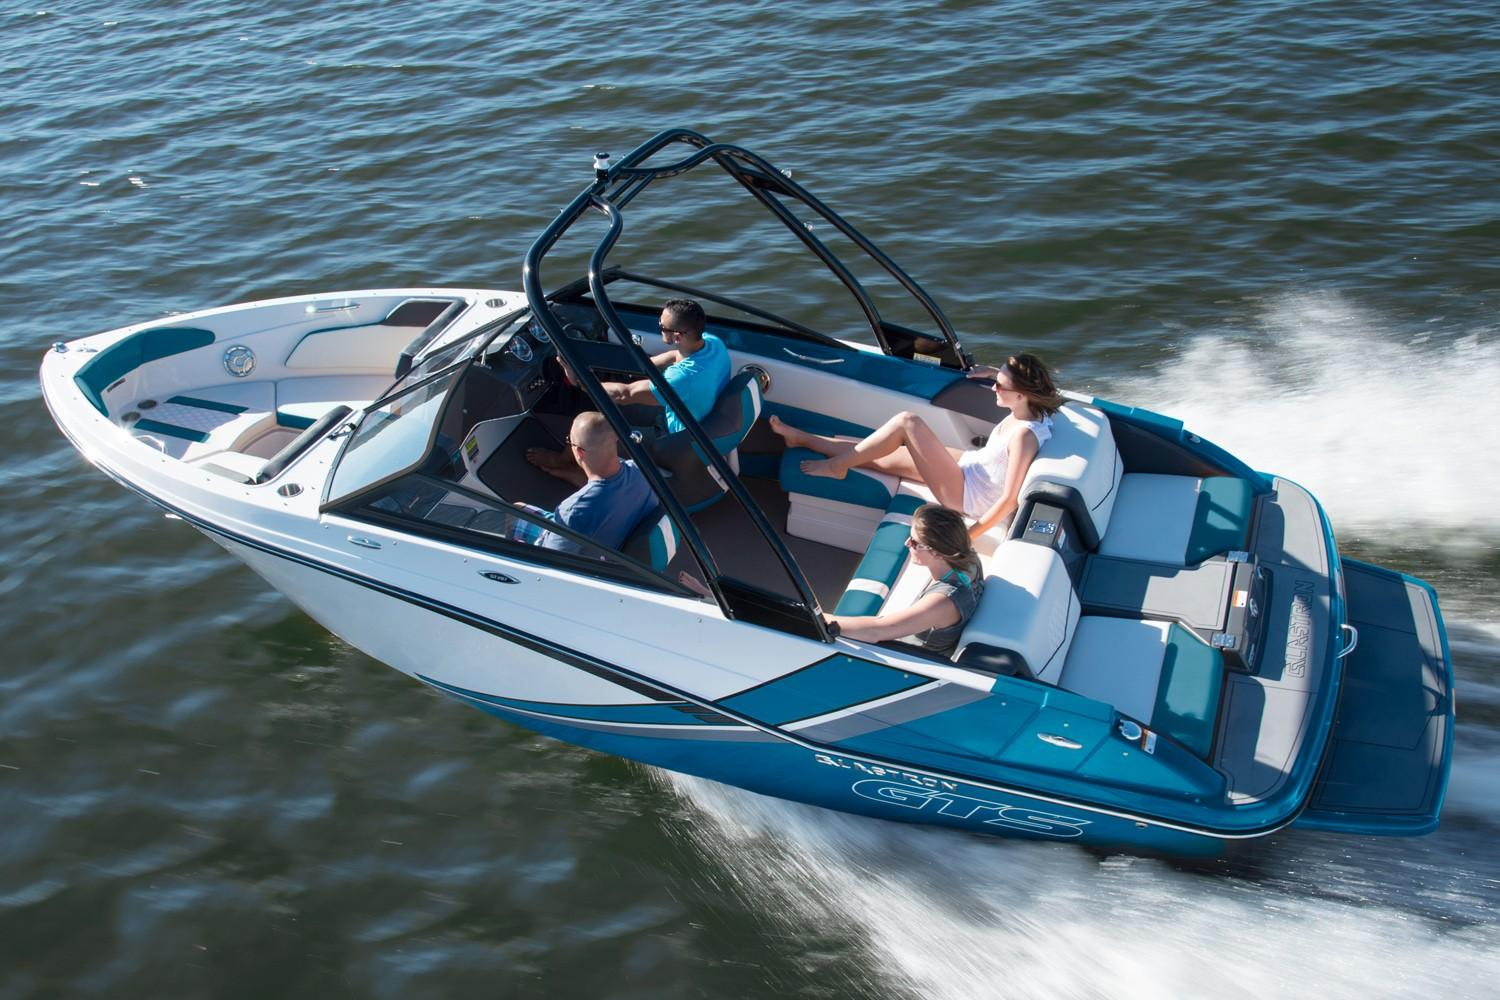 New 2018 Glastron GTS 207 Power Boats Inboard in Speculator, NY